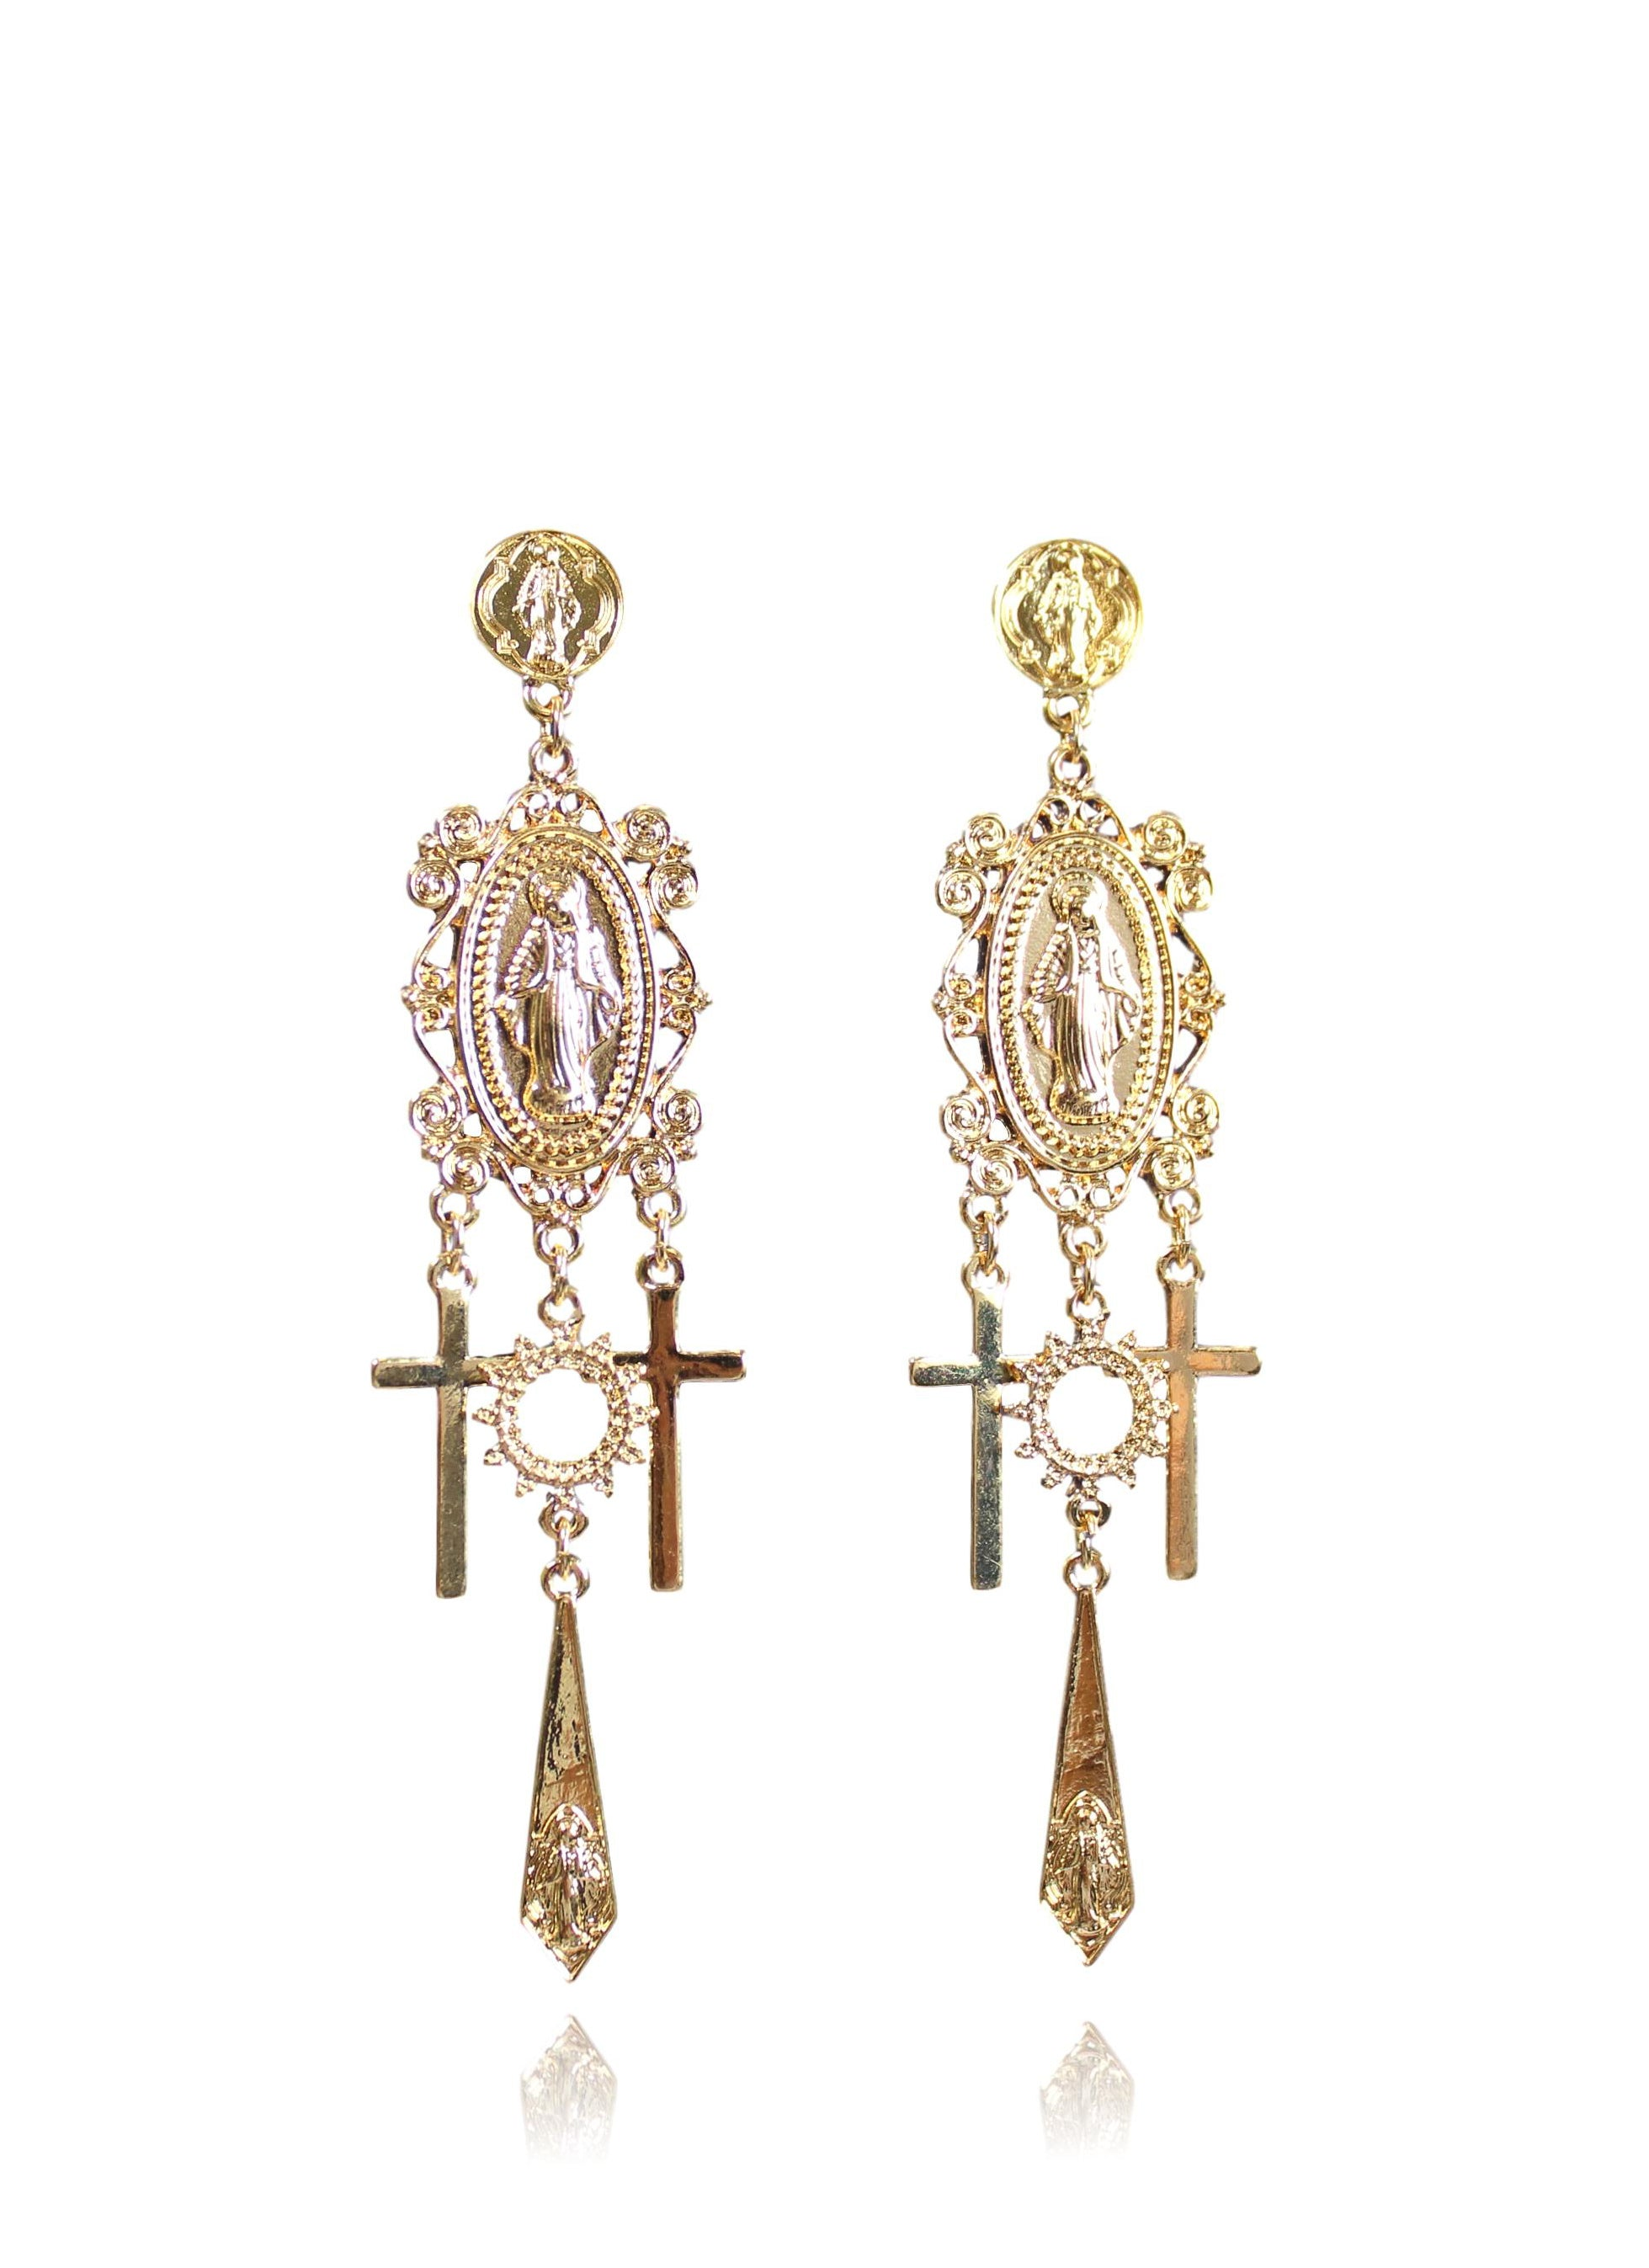 HAIL MARY EARRING IN GOLD